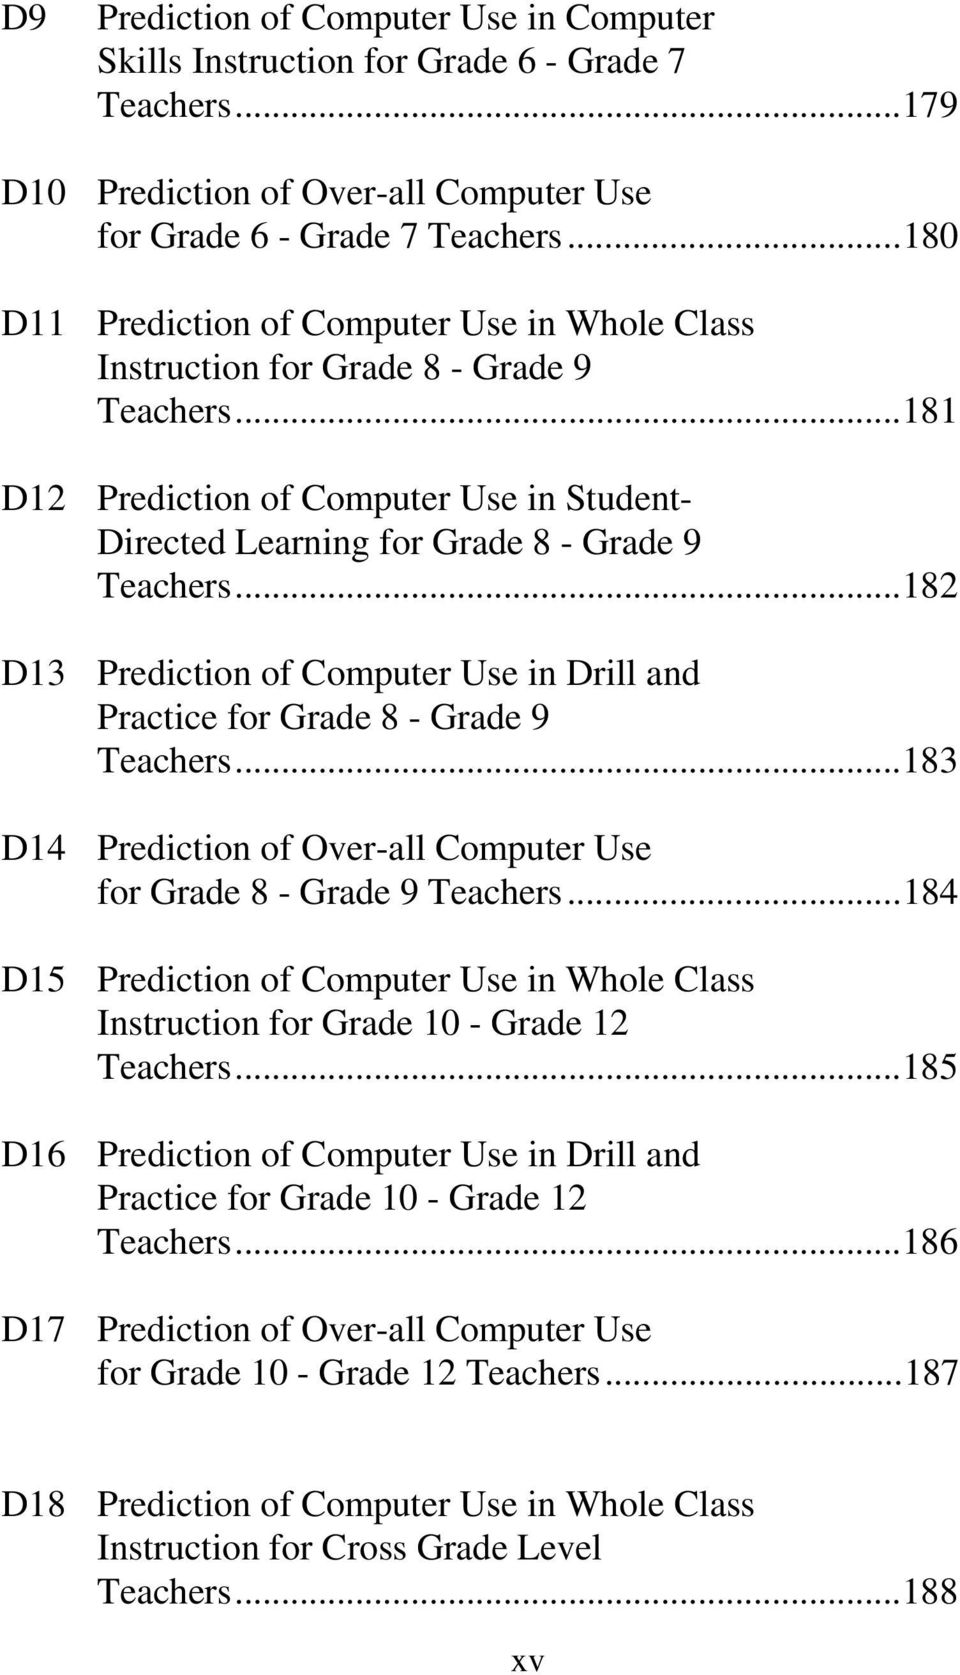 ..182 Prediction of Computer Use in Drill and Practice for Grade 8 - Grade 9 Teachers...183 Prediction of Over-all Computer Use for Grade 8 - Grade 9 Teachers.